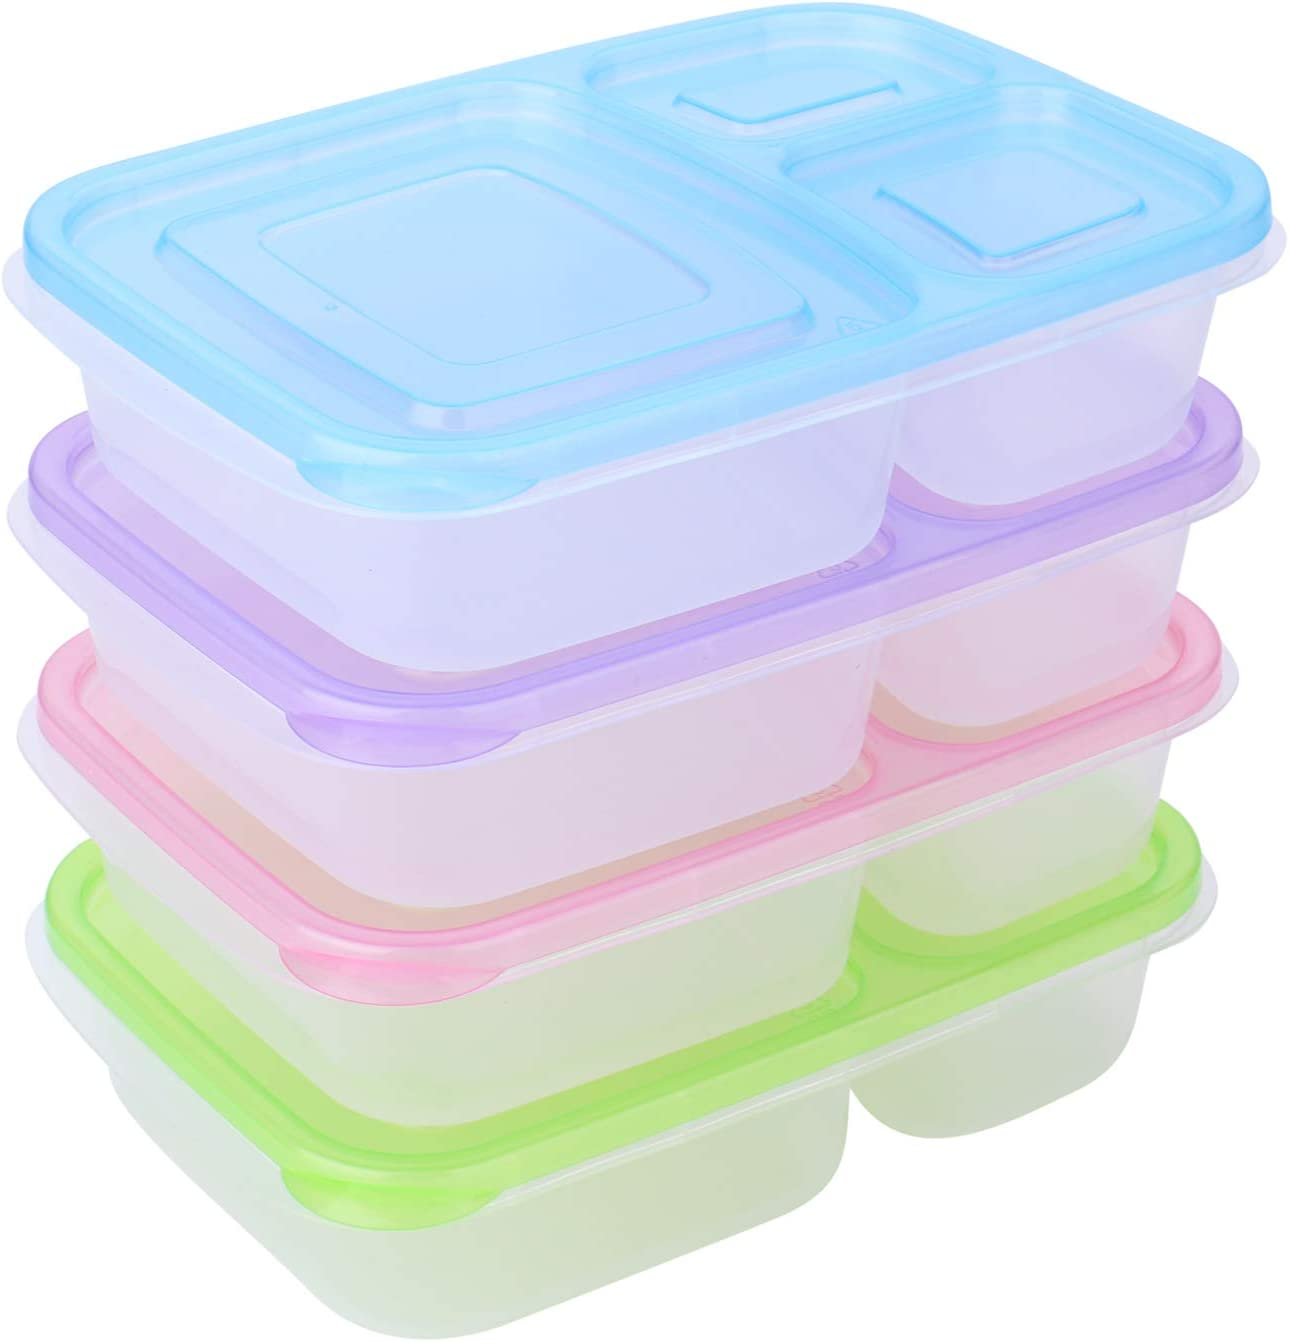 Meal Prep Containers Bento Lunch Box   4 Pack   Reusable 3-Compartment Plastic Divided Food Storage Container Boxes for Kids & Adults   Microwave, Dishwasher and Freezer Safe by THETIS Homes